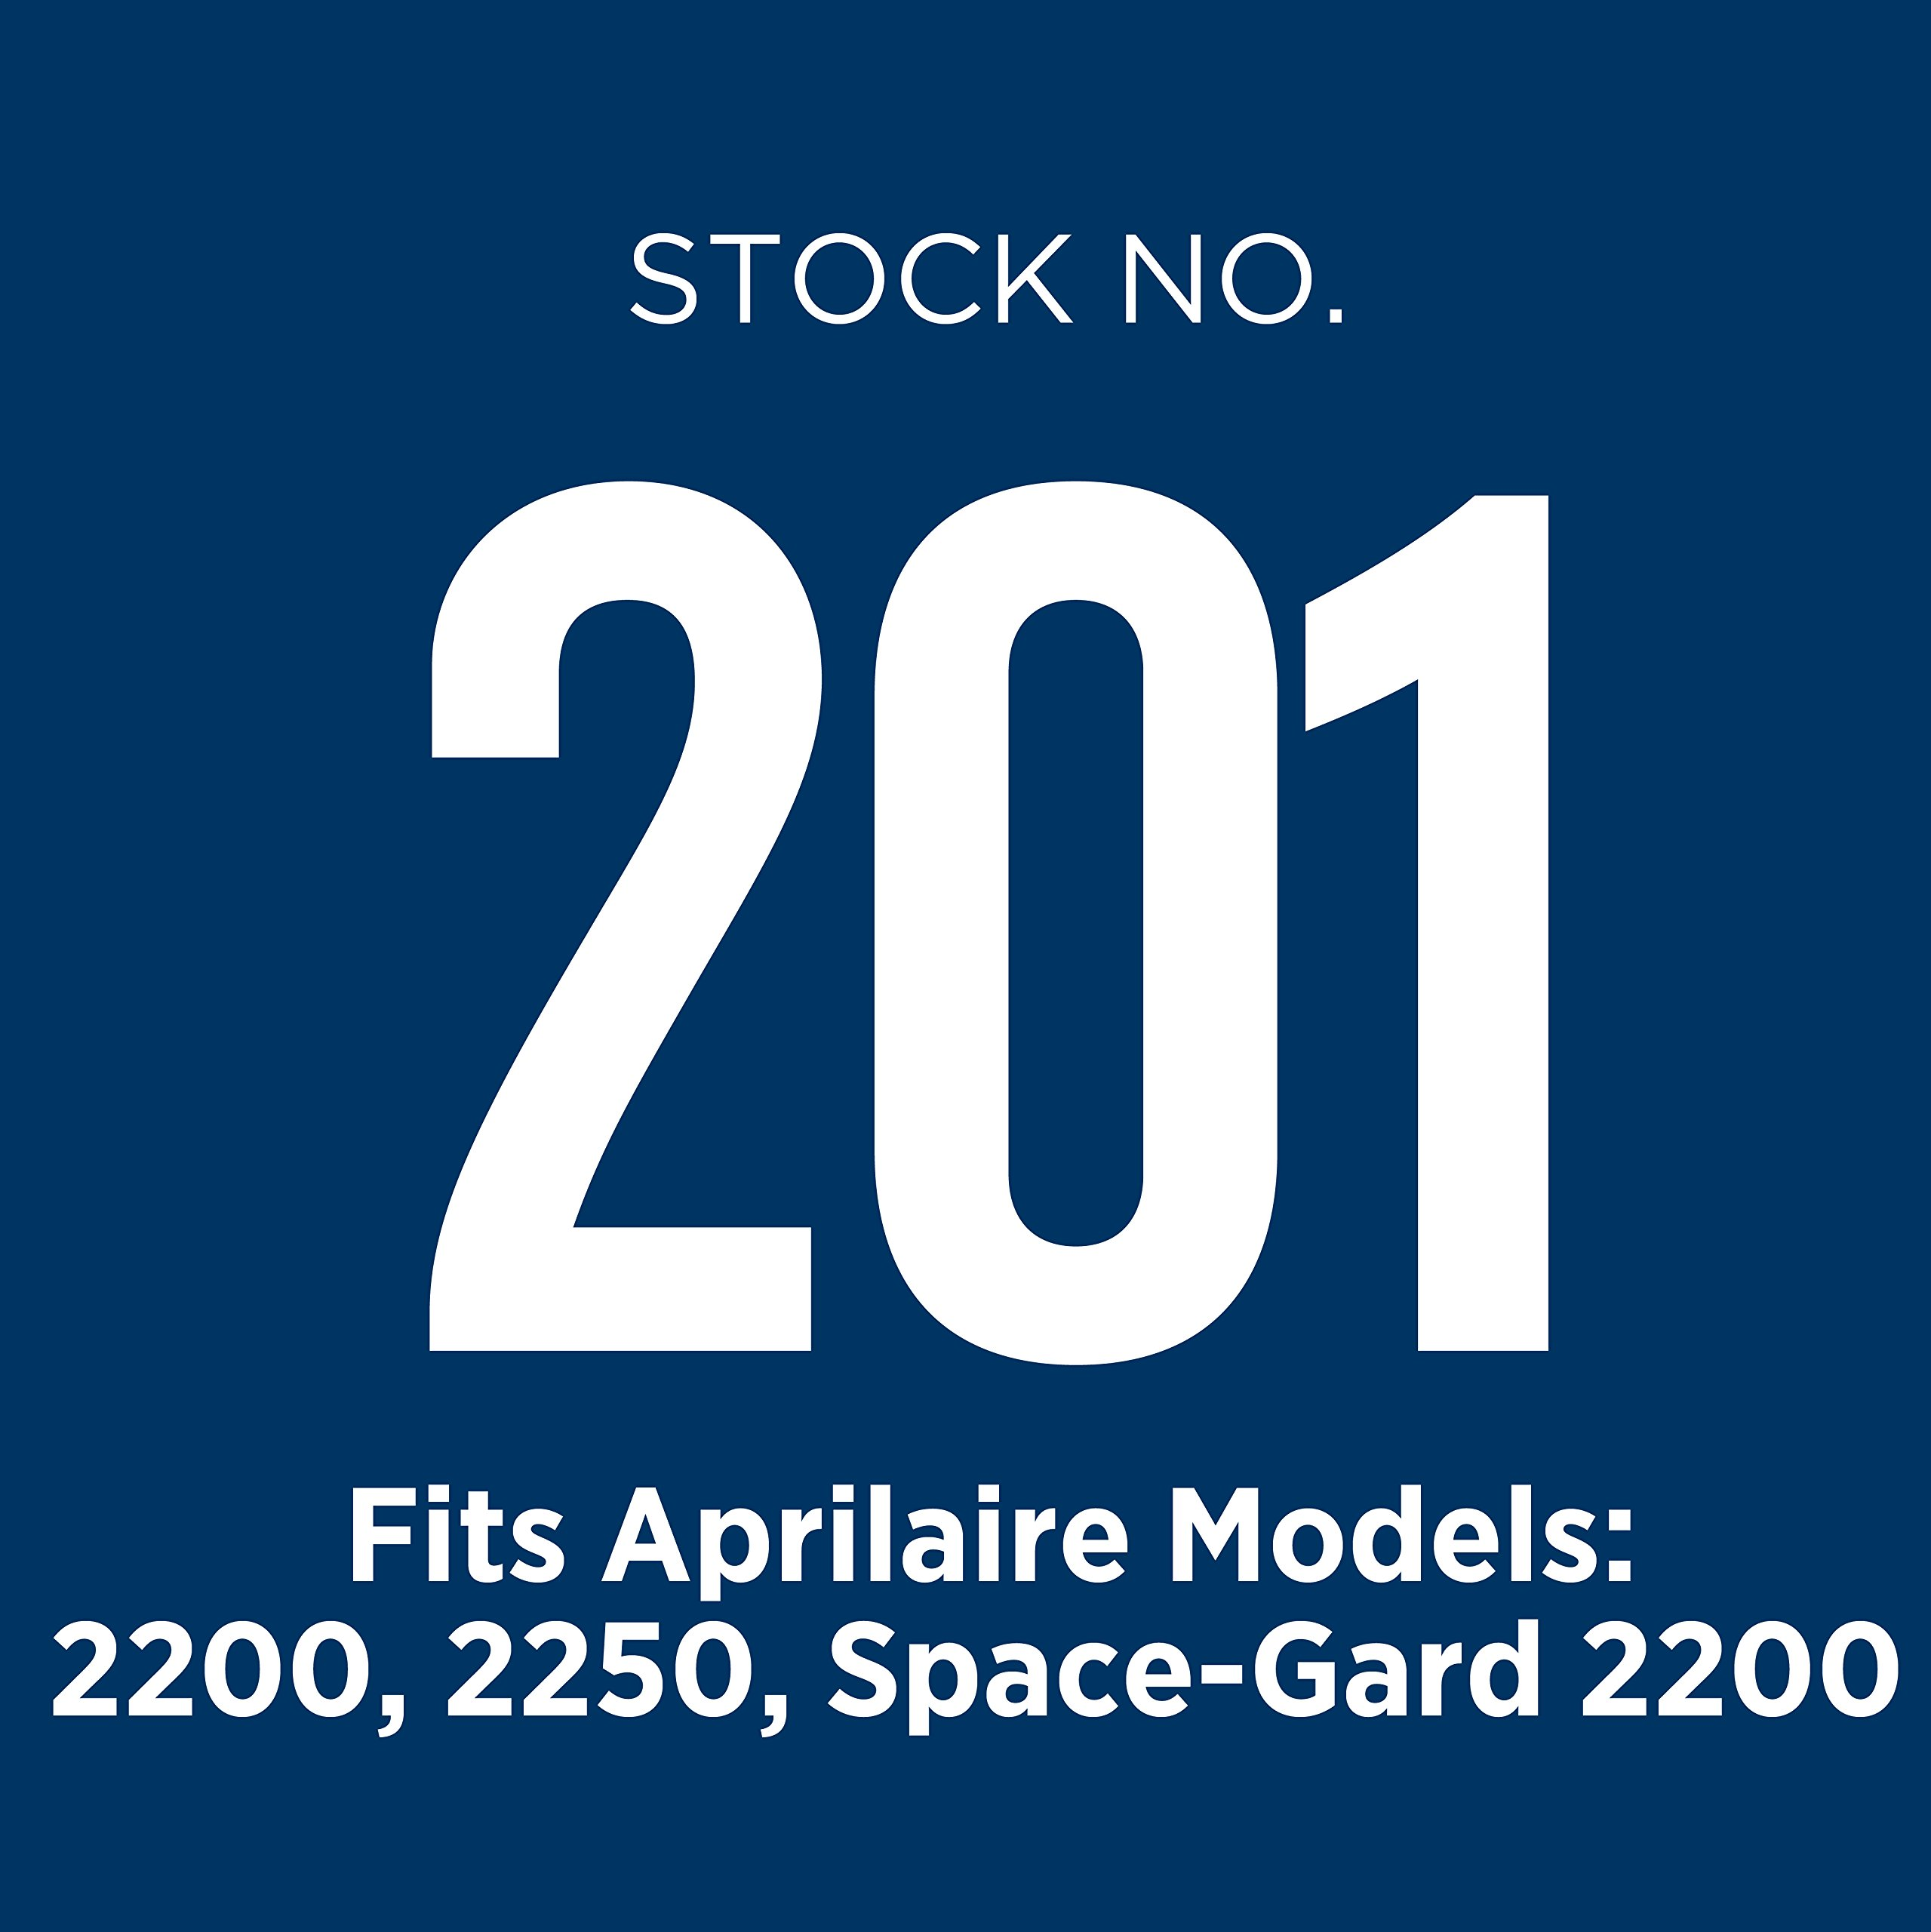 Aprilaire 201 Air Filter for Air Purifier Models, 2200 and 2250; Pack of 4 by Aprilaire (Image #2)